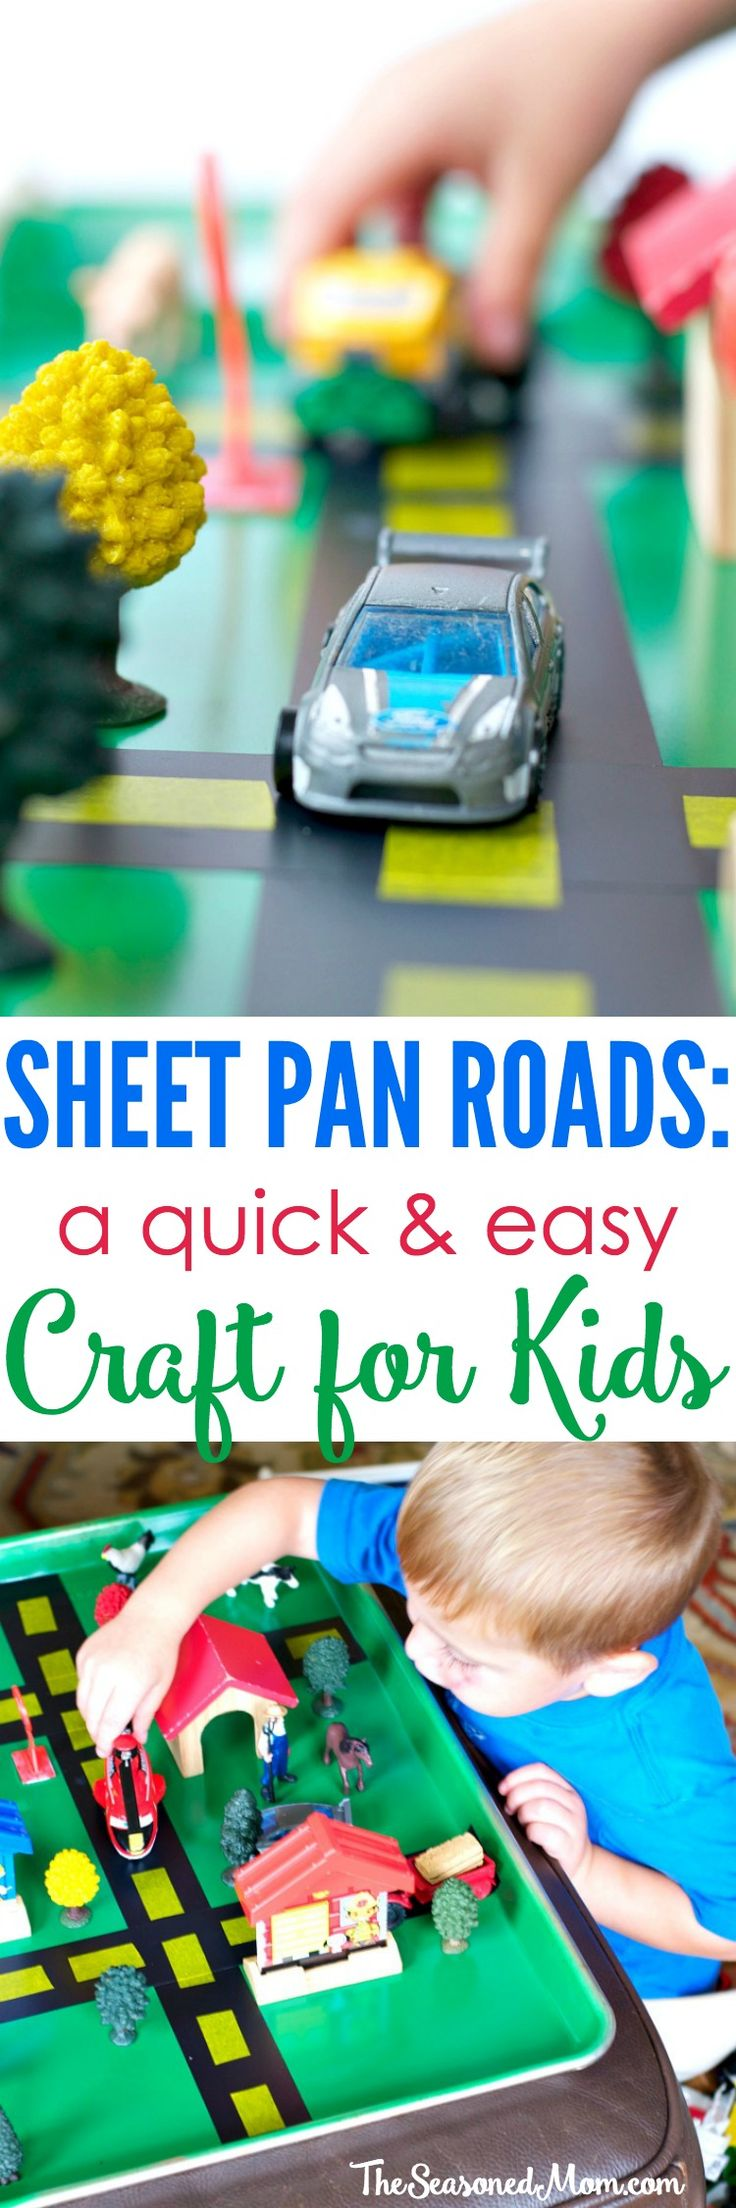 330 best gifts images on pinterest gift ideas holiday gifts and homemade gift for kids sheet pan roads solutioingenieria Image collections